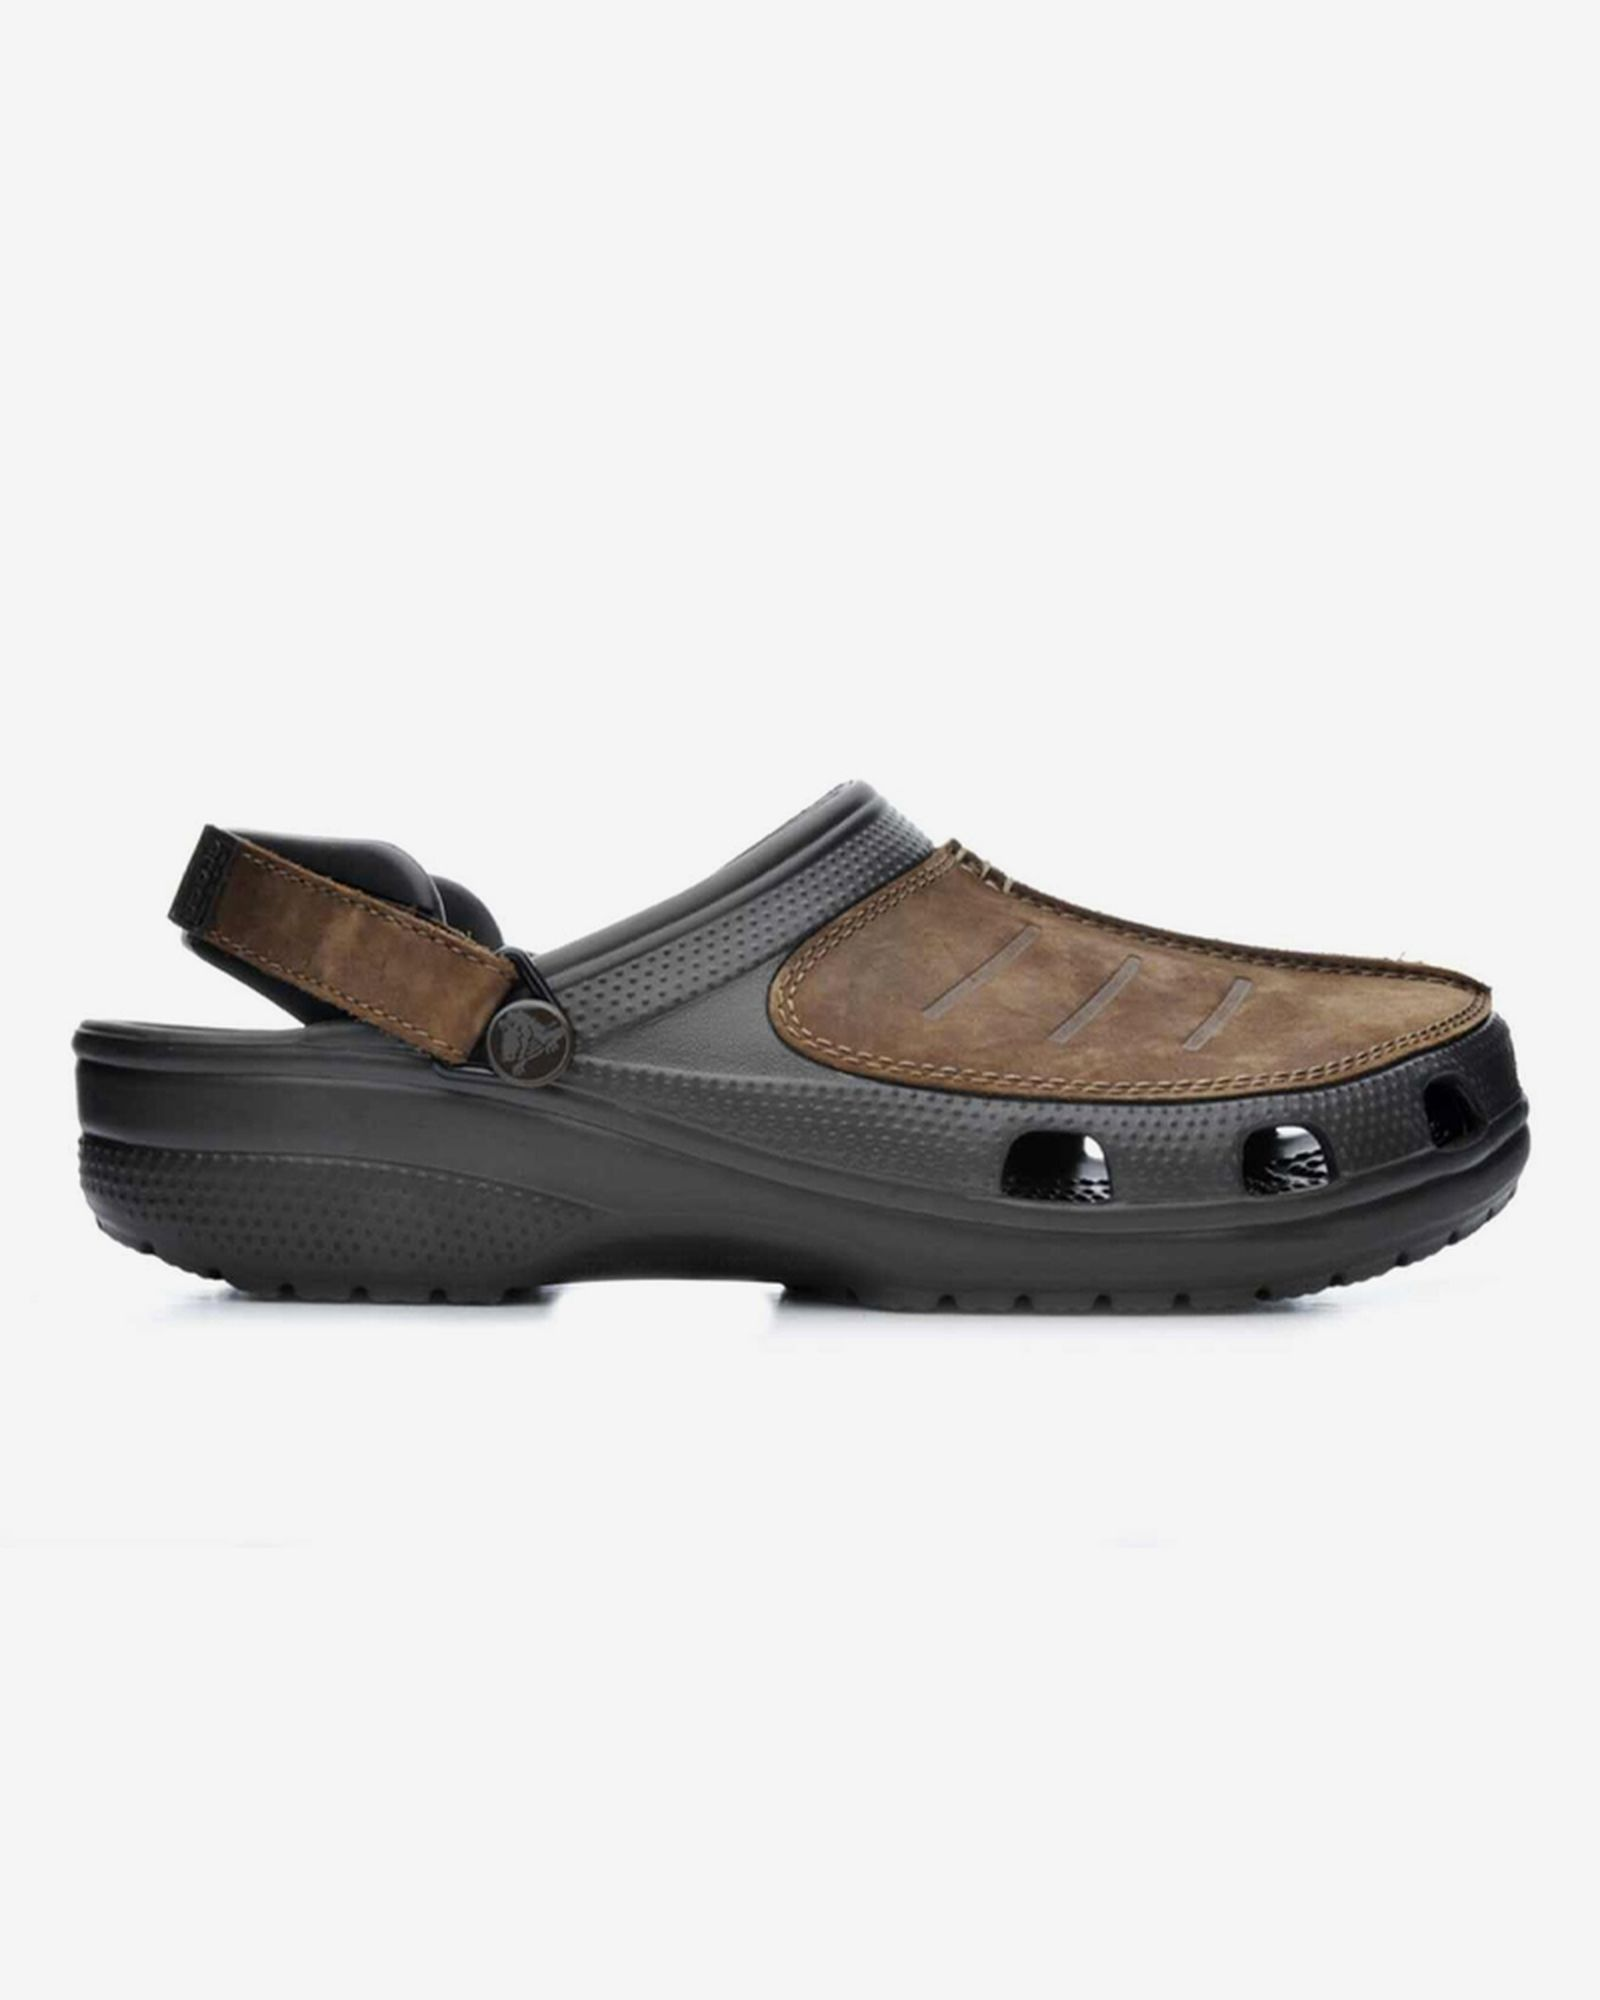 dad-sandals-roundtable-shopping-guide-05